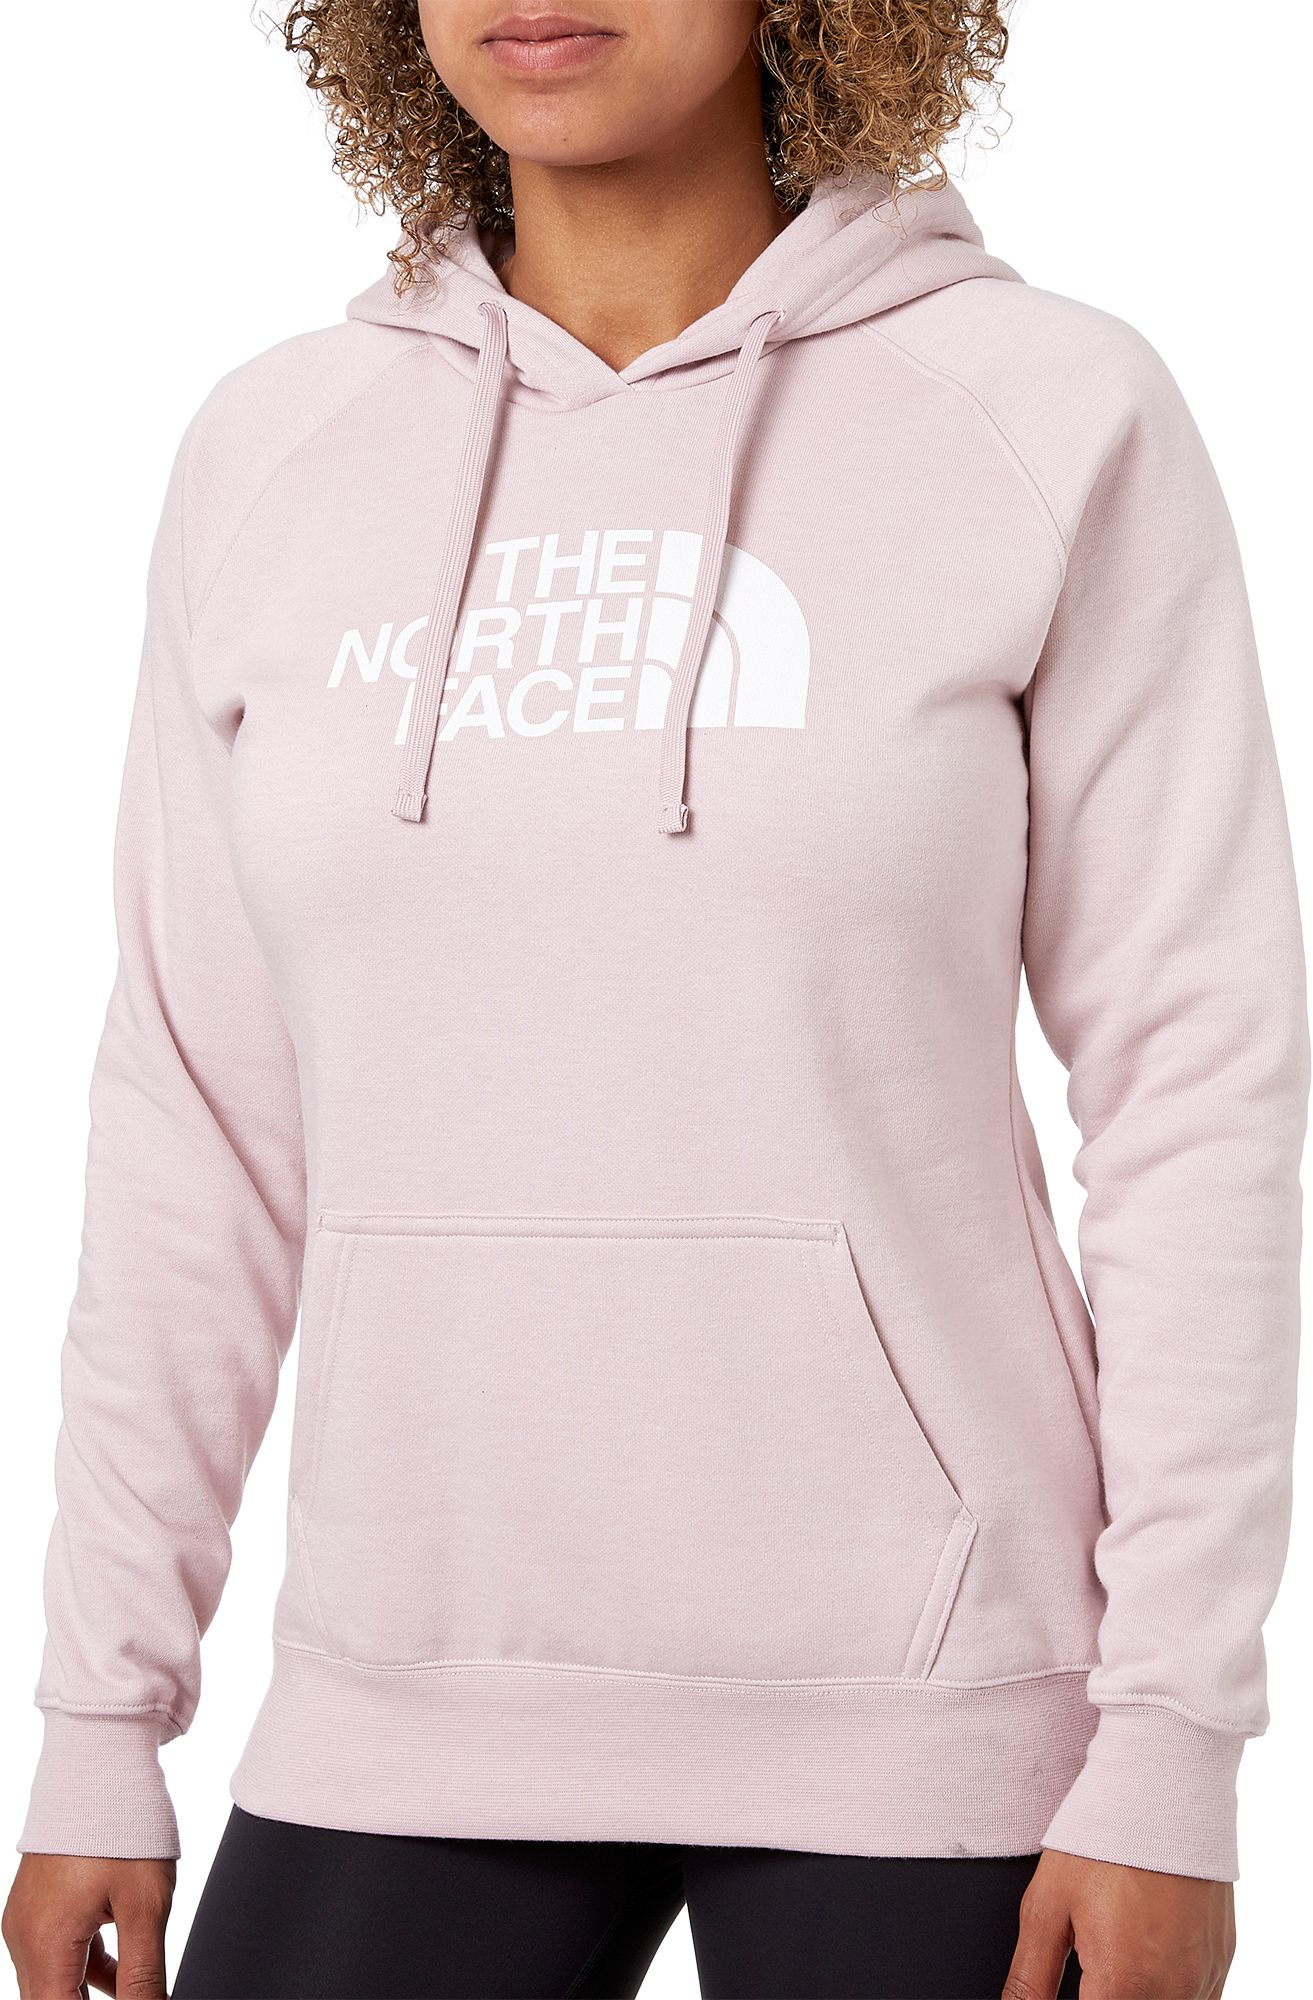 06261a169 The North Face Women's Half Dome Pullover Hoodie